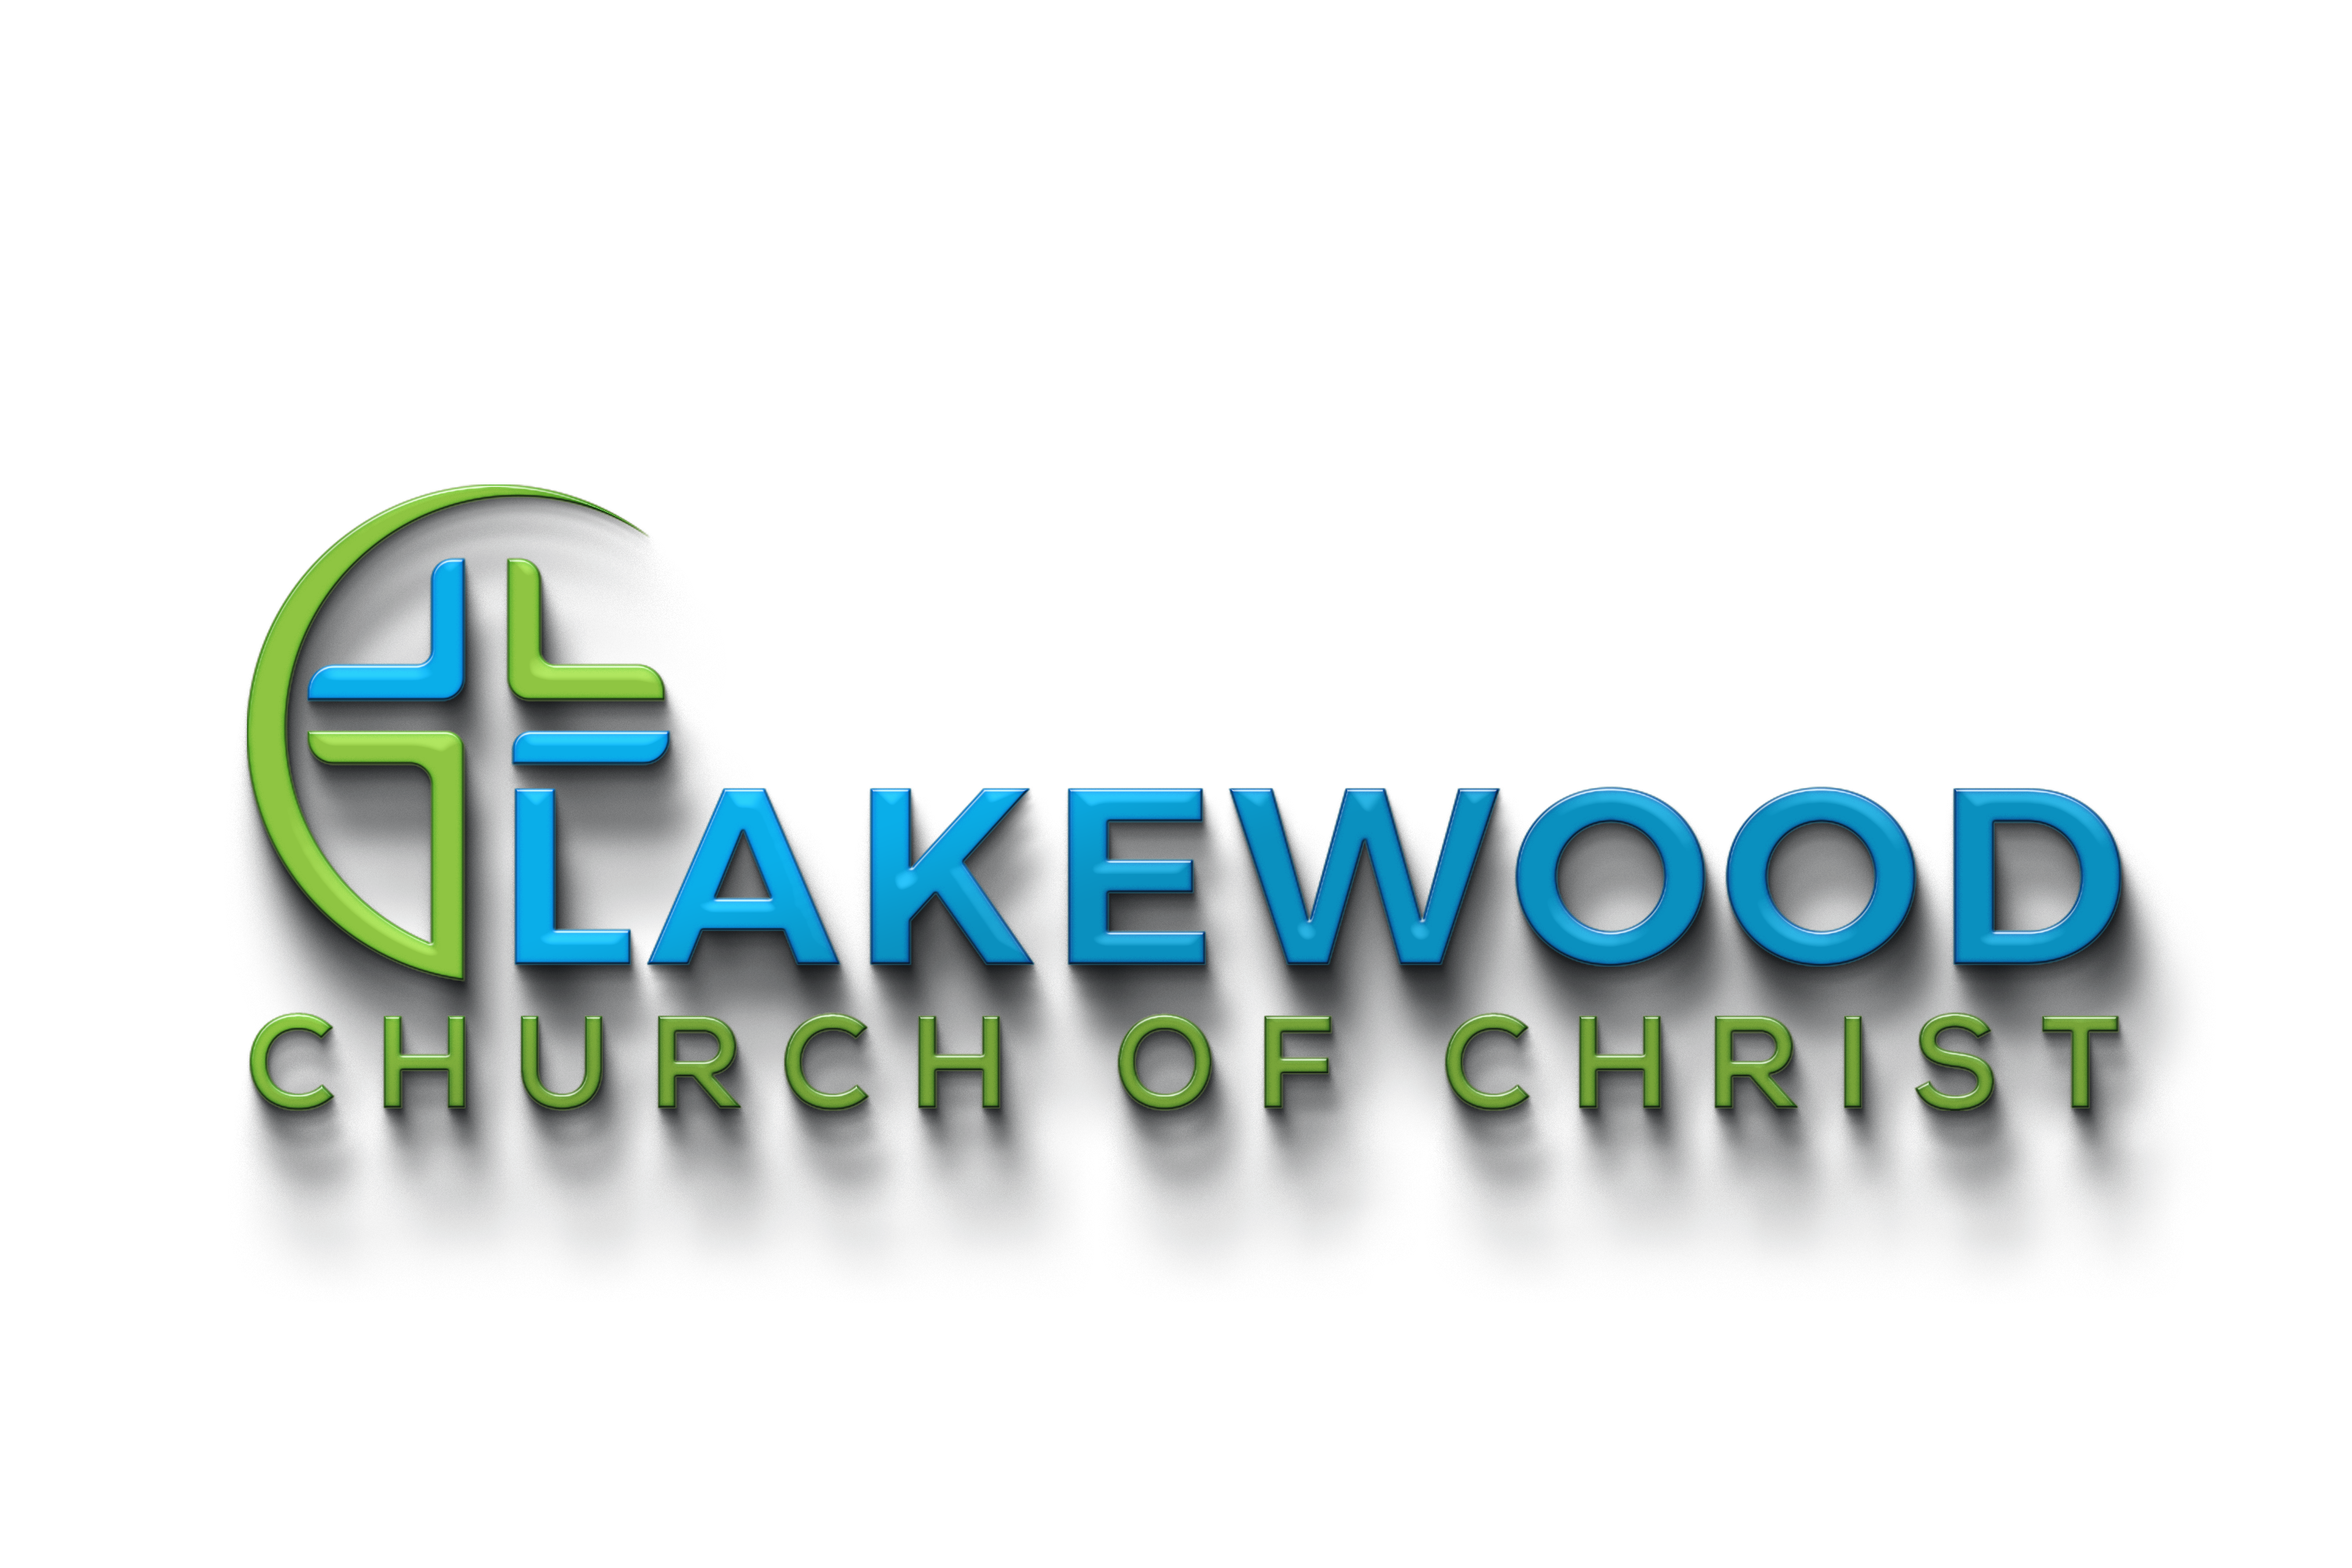 Lakewood Church of Christ